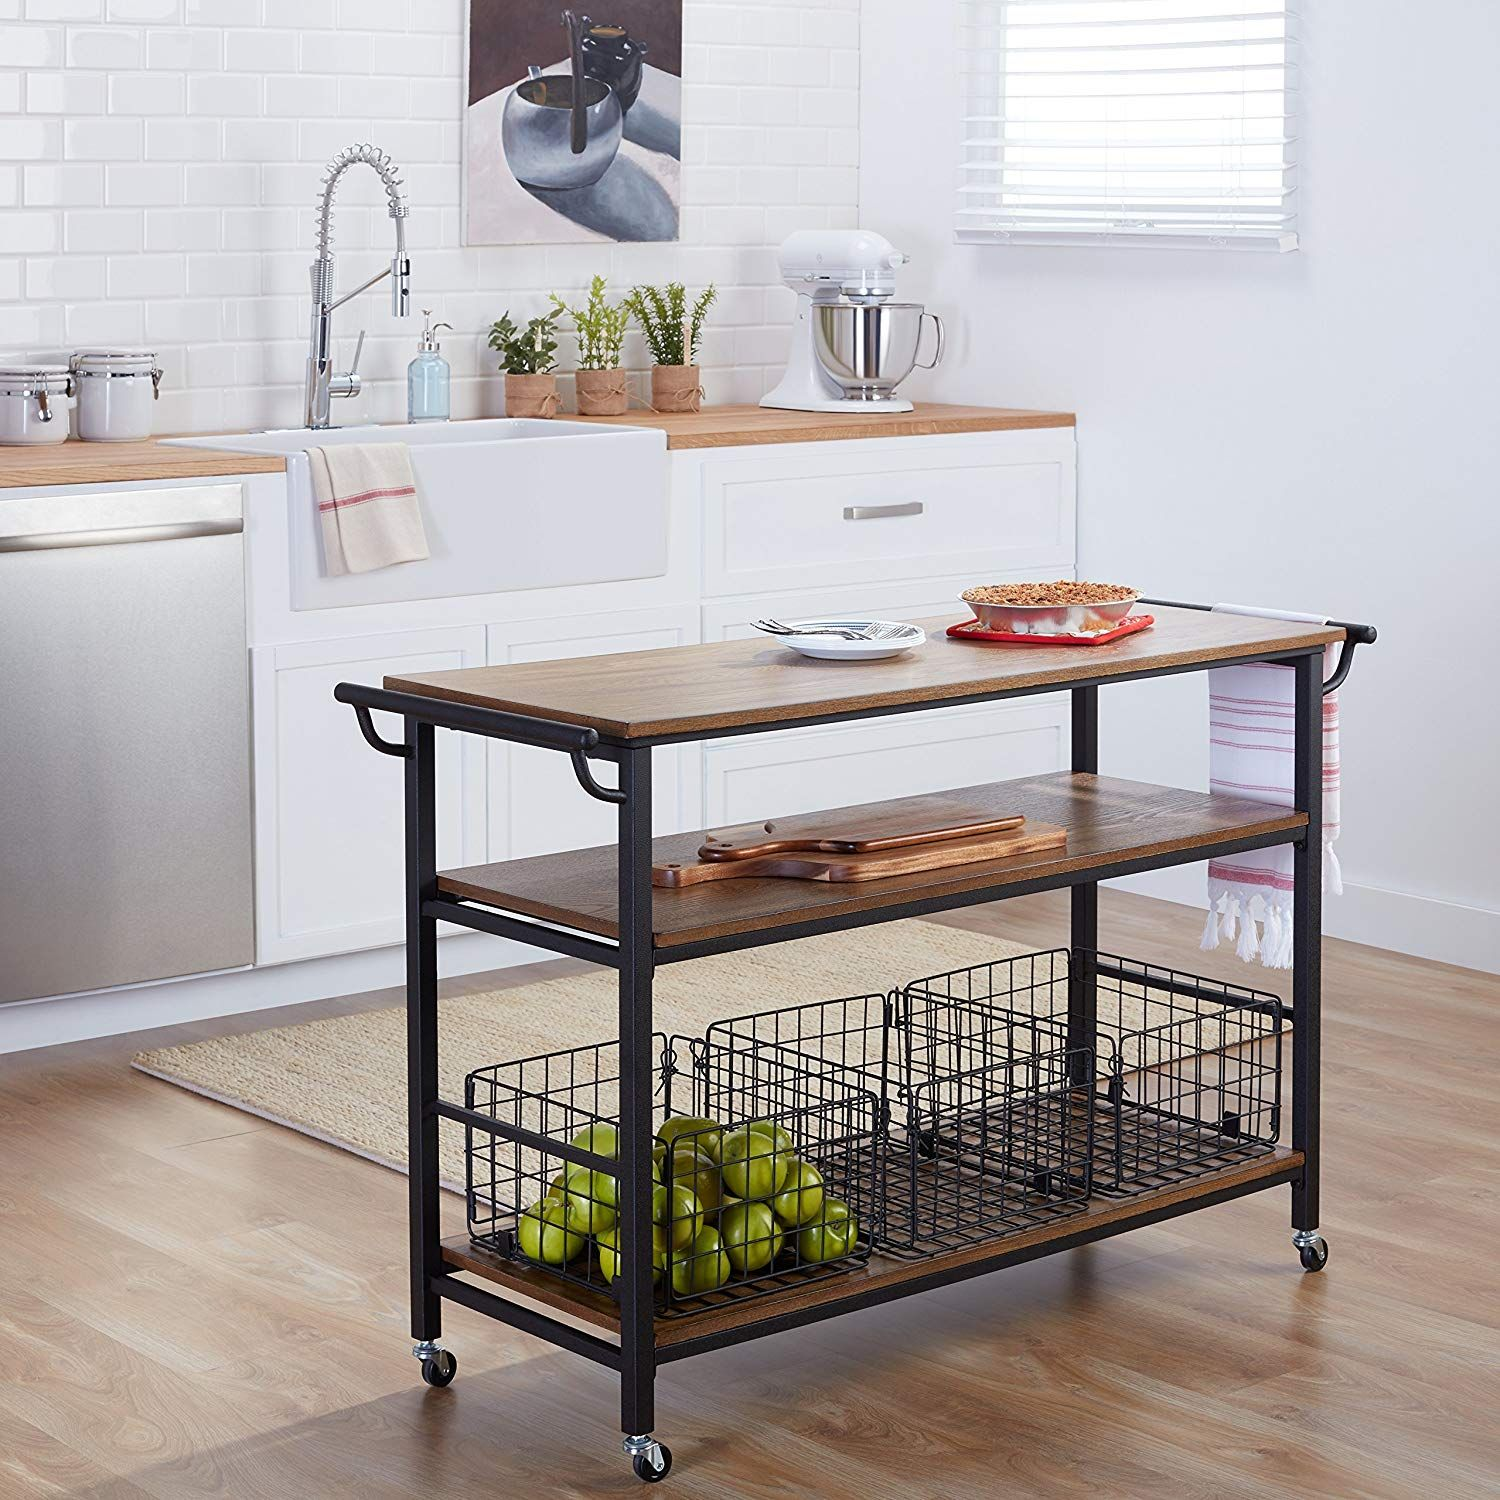 Industrial Rustic Wood Table Top Kitchen Cart With Metal Frame 3 Storage Baskets And Shelf Includes Modhaus Li Rustic Kitchen Kitchen Design Kitchen Remodel